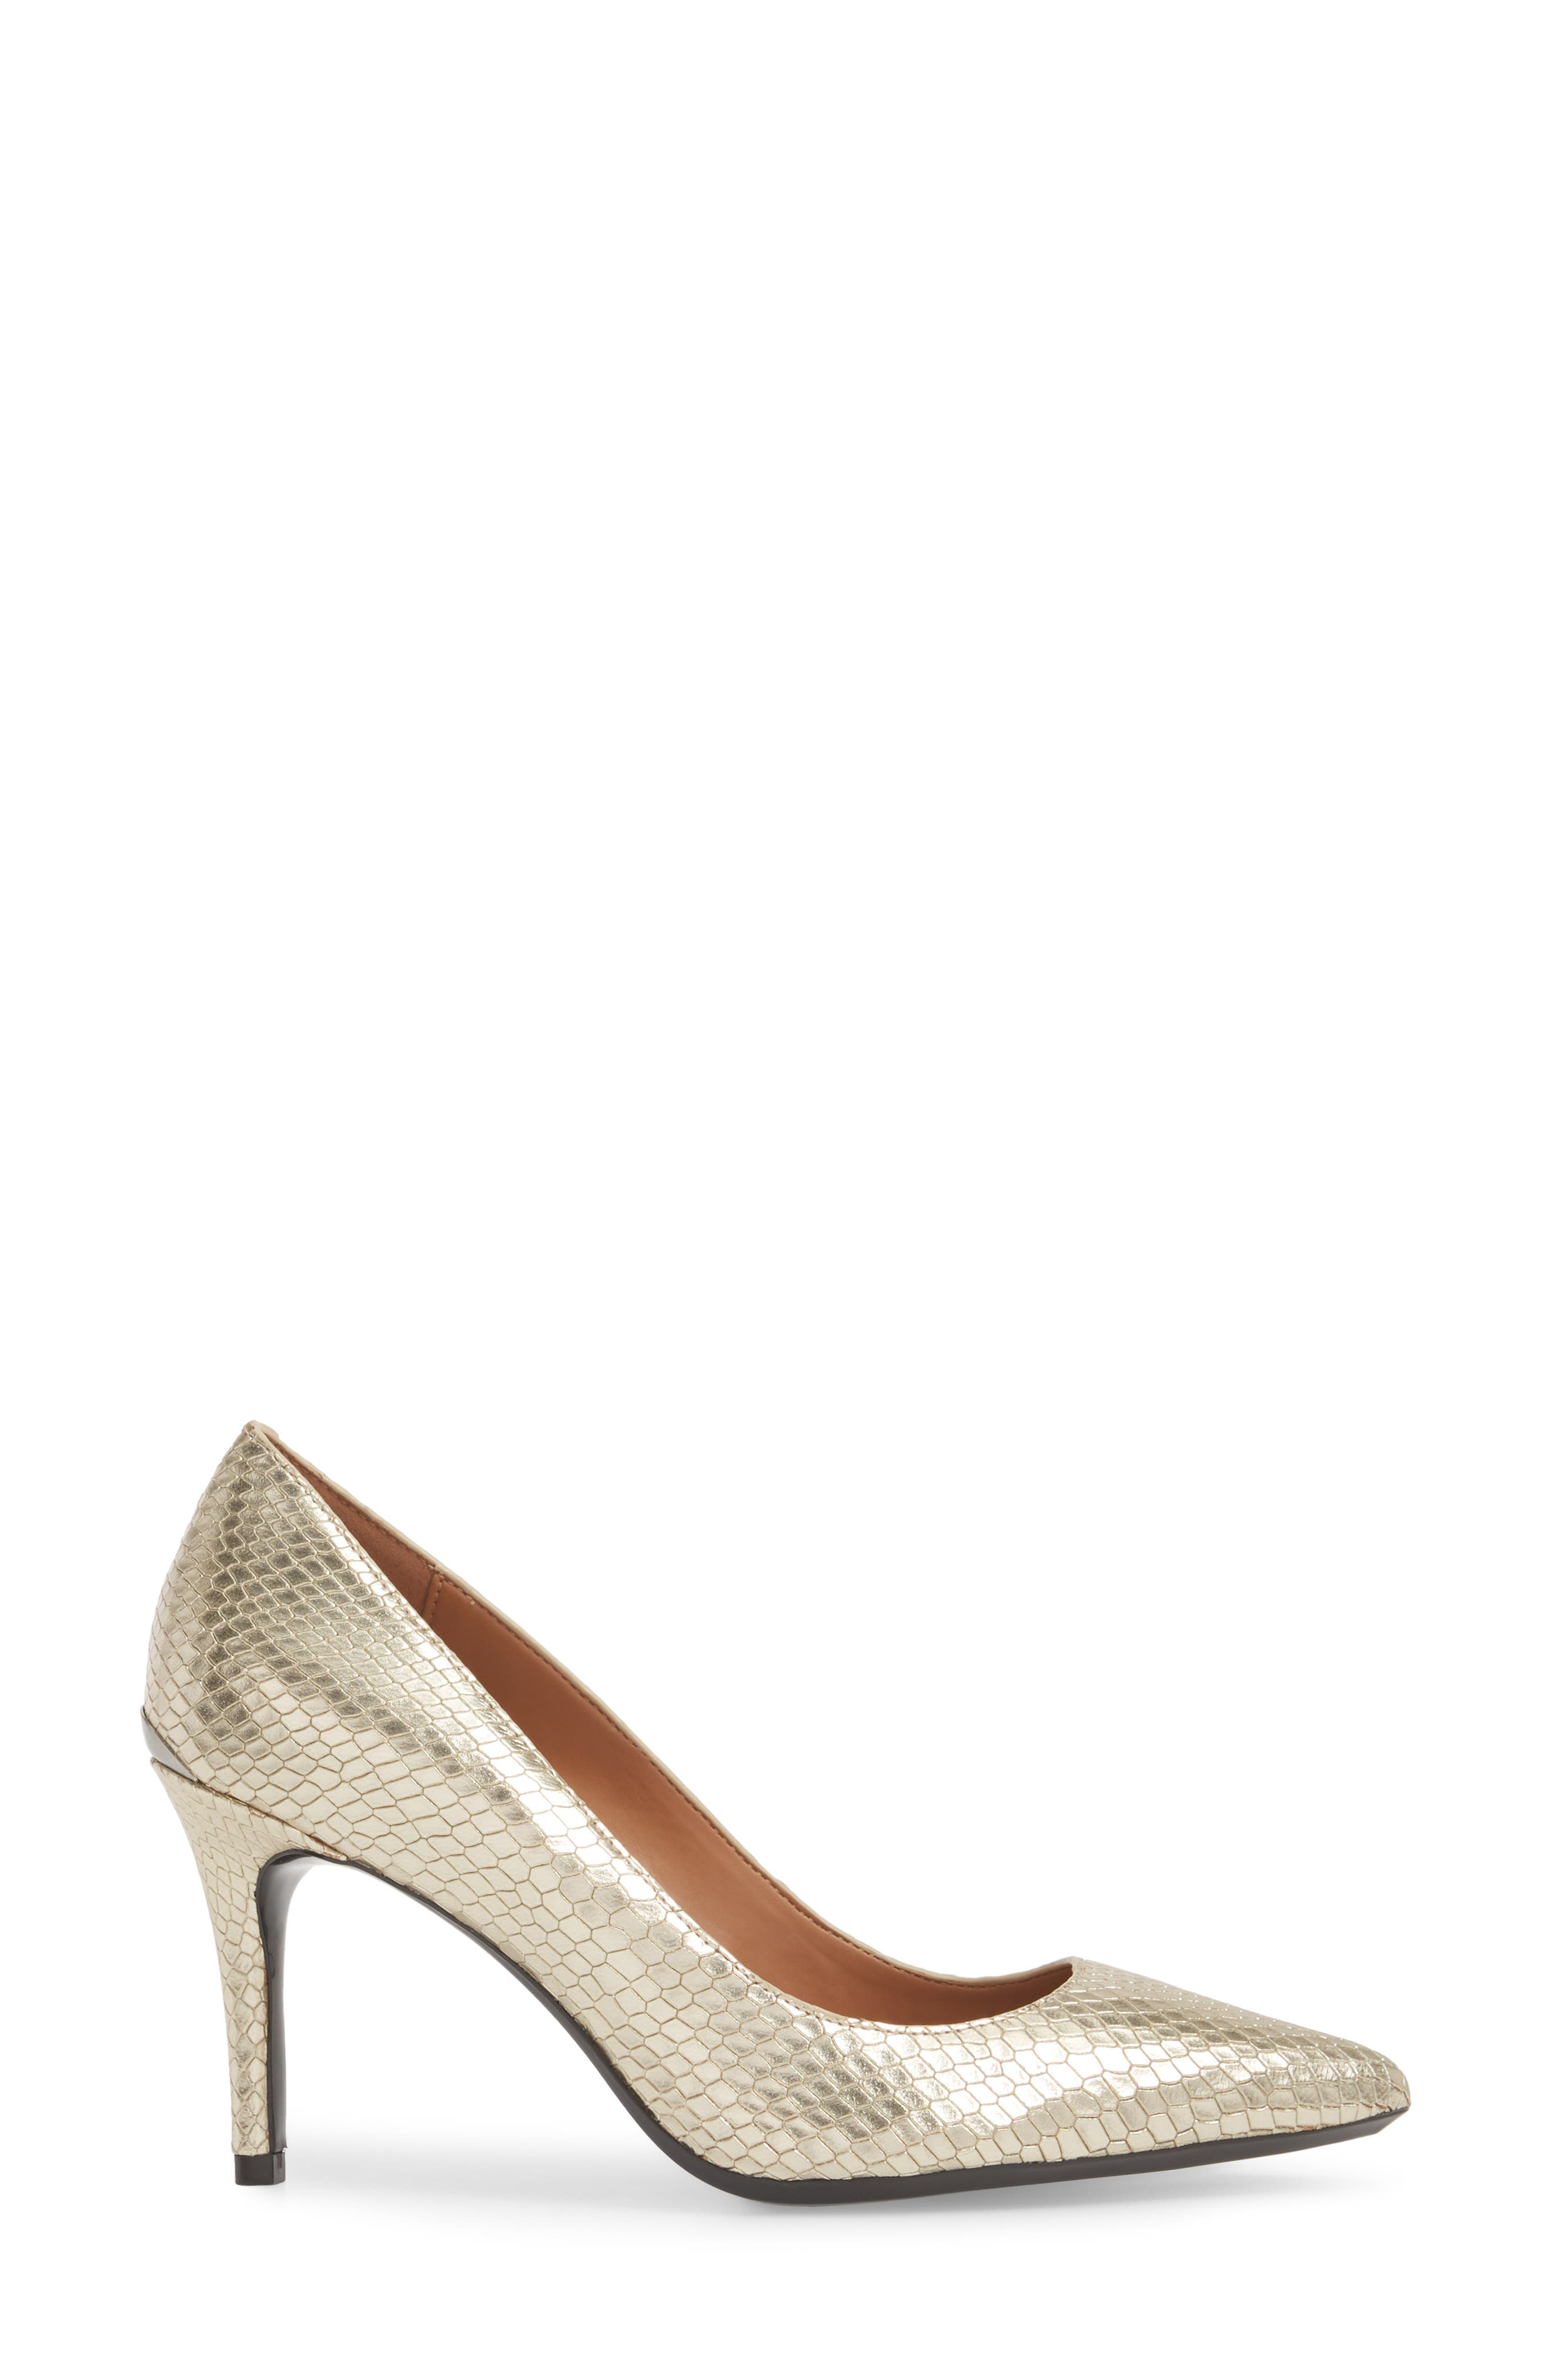 CALVIN KLEIN, 'Gayle' Pointy Toe Pump, Alternate thumbnail 3, color, SOFT GOLD LEATHER